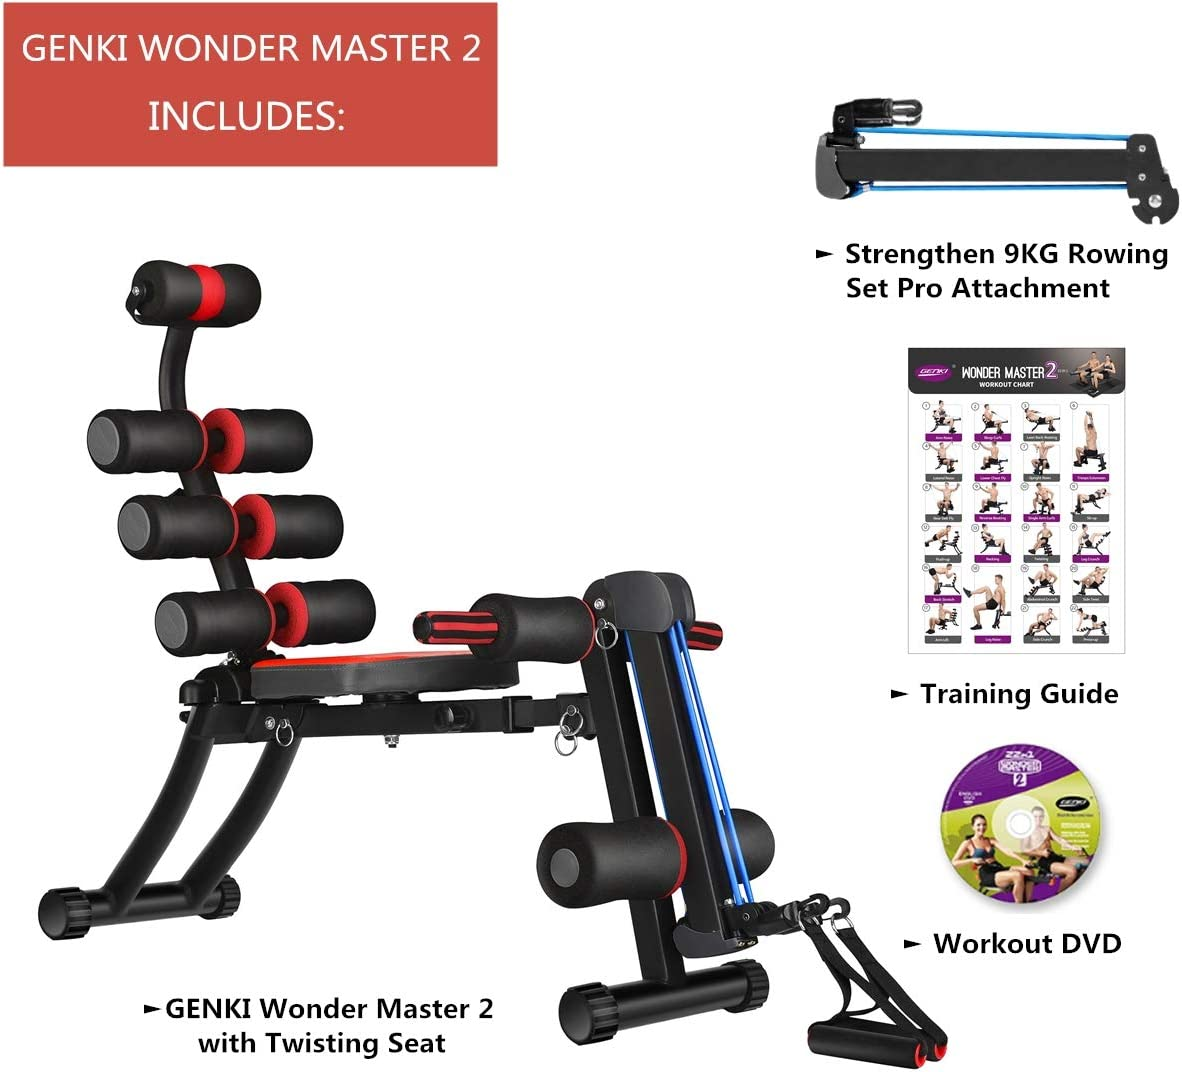 Unisex Wonder Master Abs Exercise Machine with built in Twisting Seat and Rower for women man sports uk office indoor GENKI pro smart core Abs Rocket Chair 22 in 1 trainer